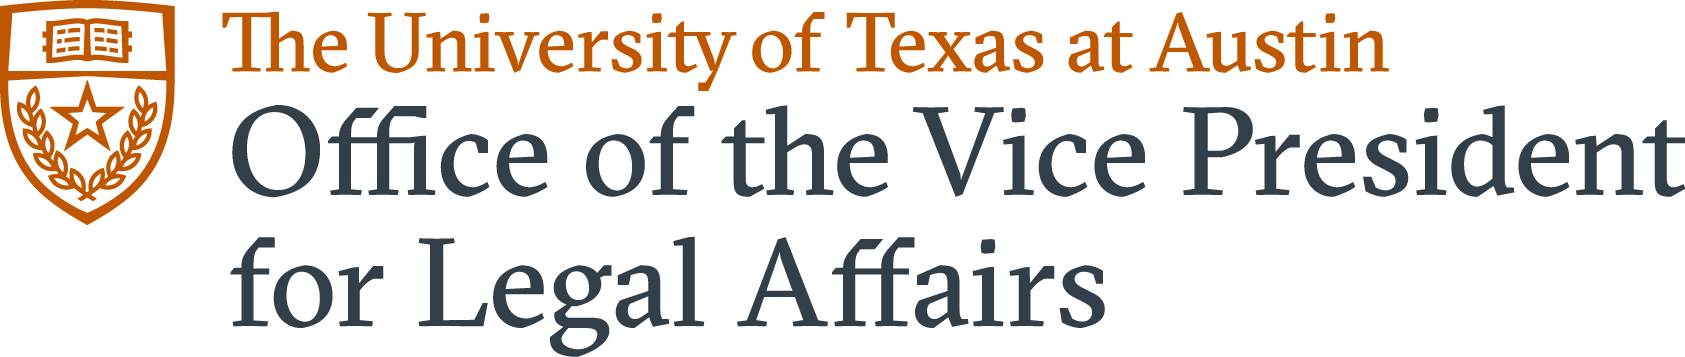 Attorney Client Privilege Legal Affairs The University Of Texas